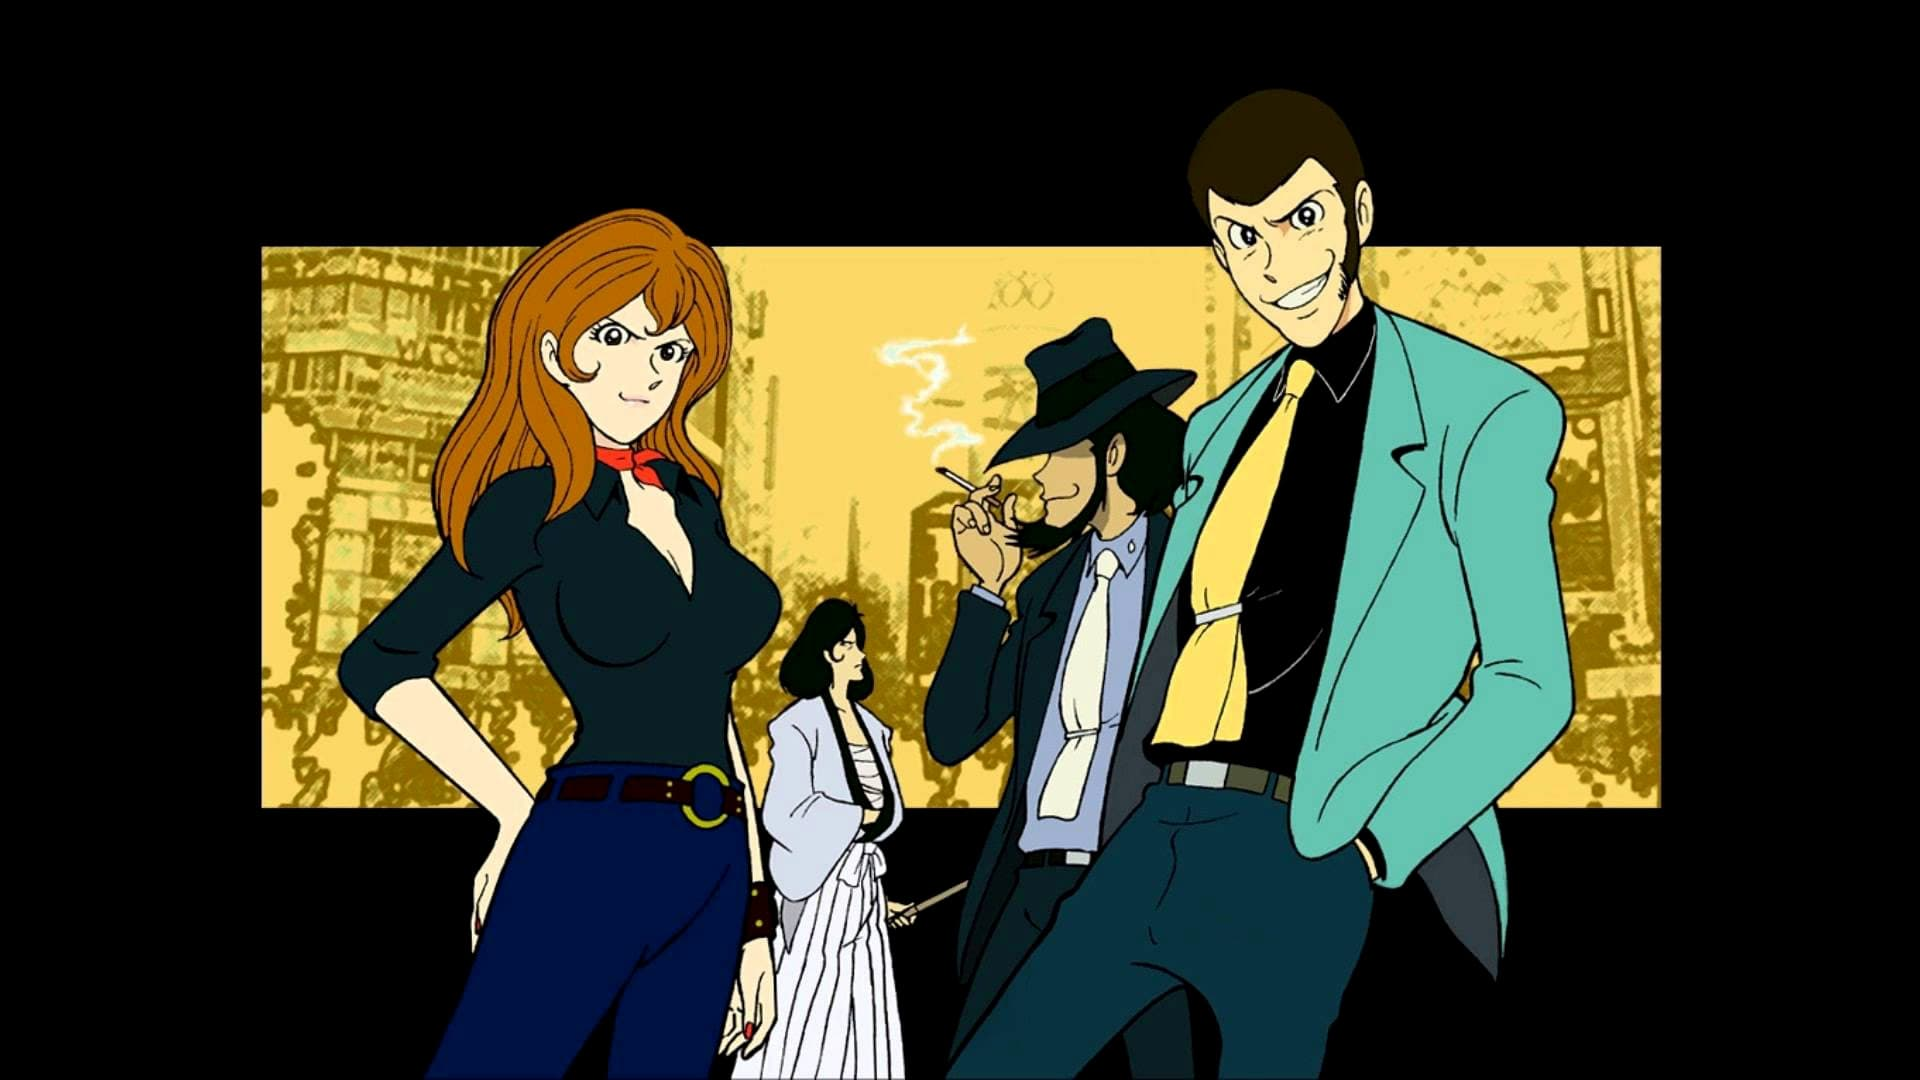 Lupin the Third - Part II